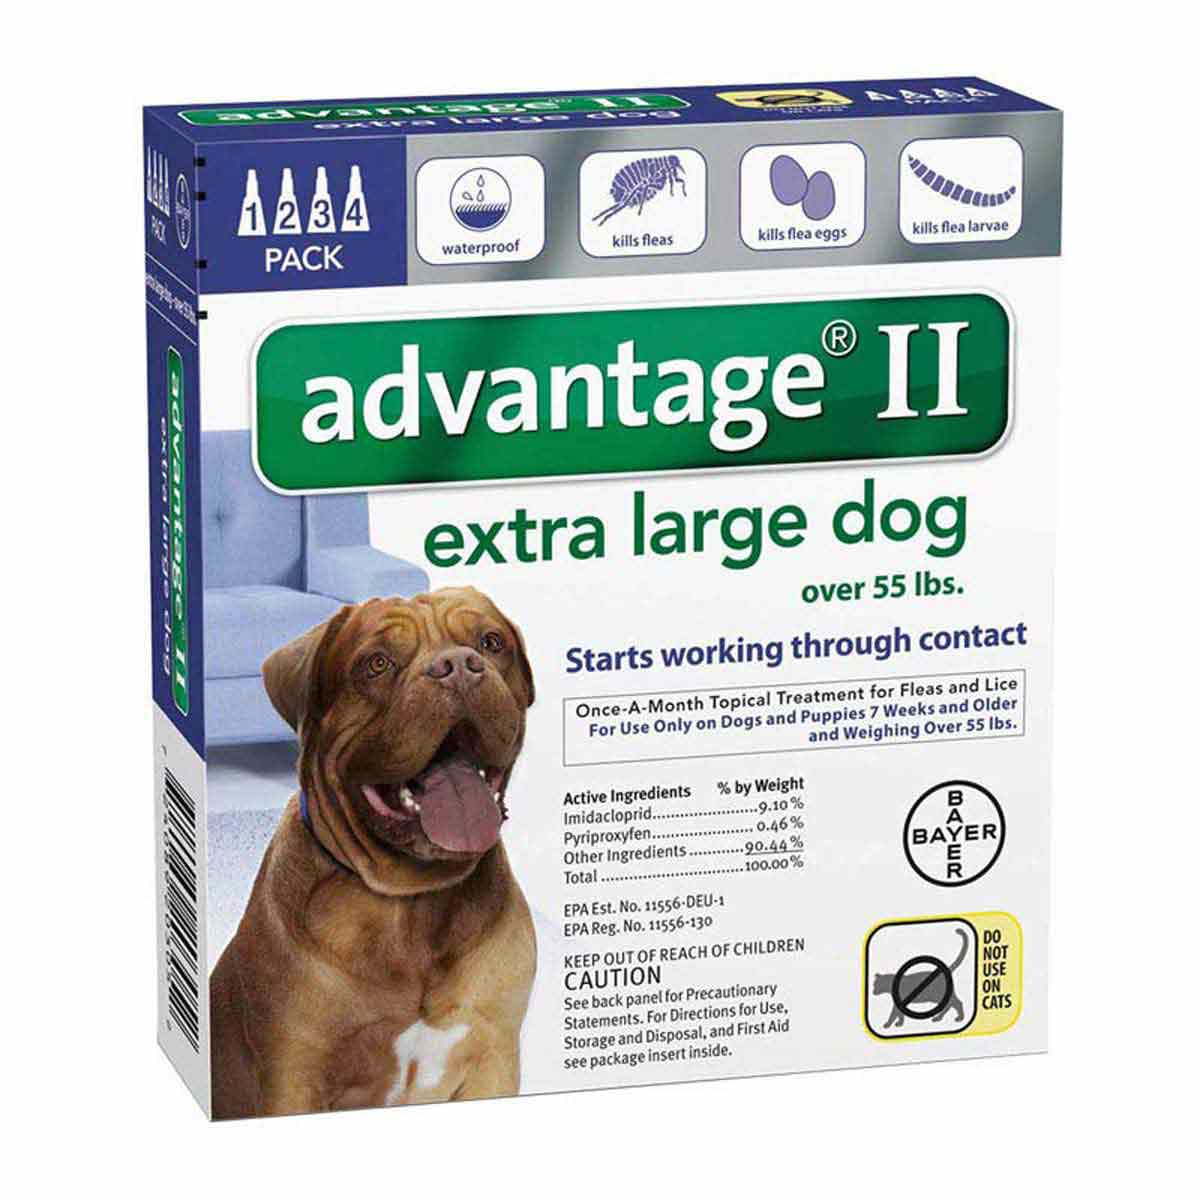 Advantage II Blue Flea Treatment for Extra Large Dogs Over 55 lbs 4 Pack